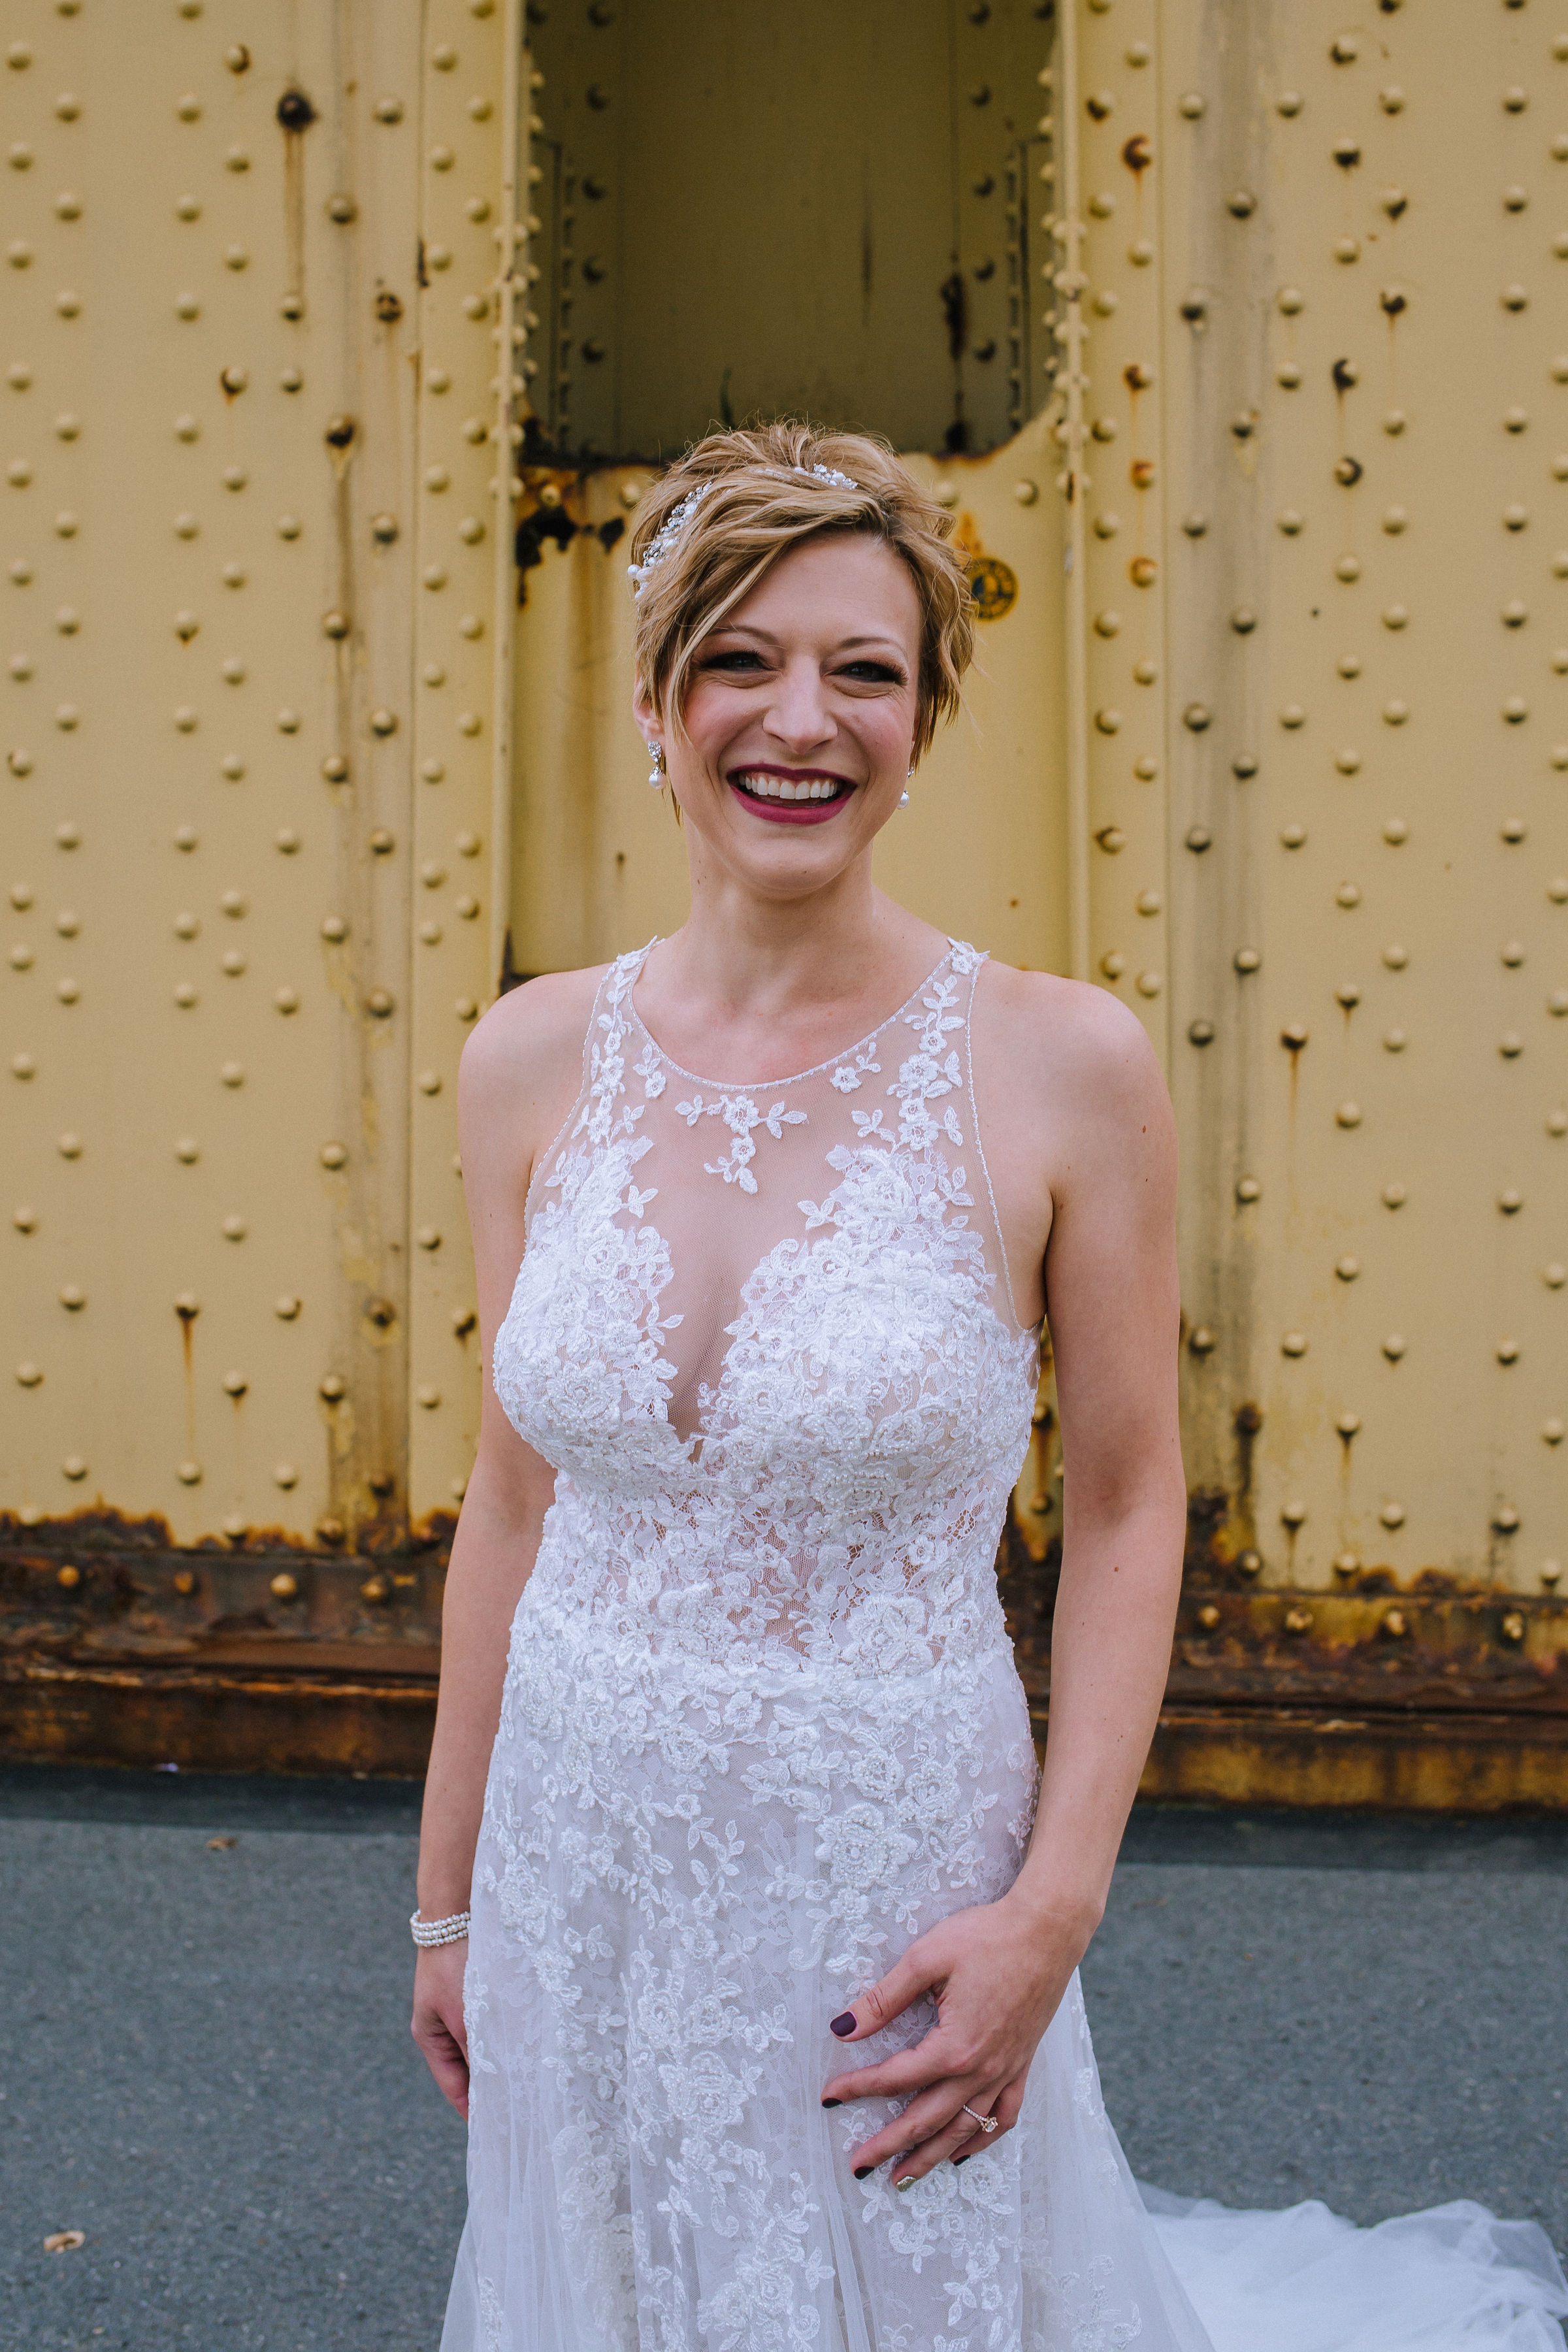 Brides poses in modern wedding dress for Pittsburgh wedding at Studio Slate planned by Exhale Events. Find more wedding inspiration at exhale-events.com!